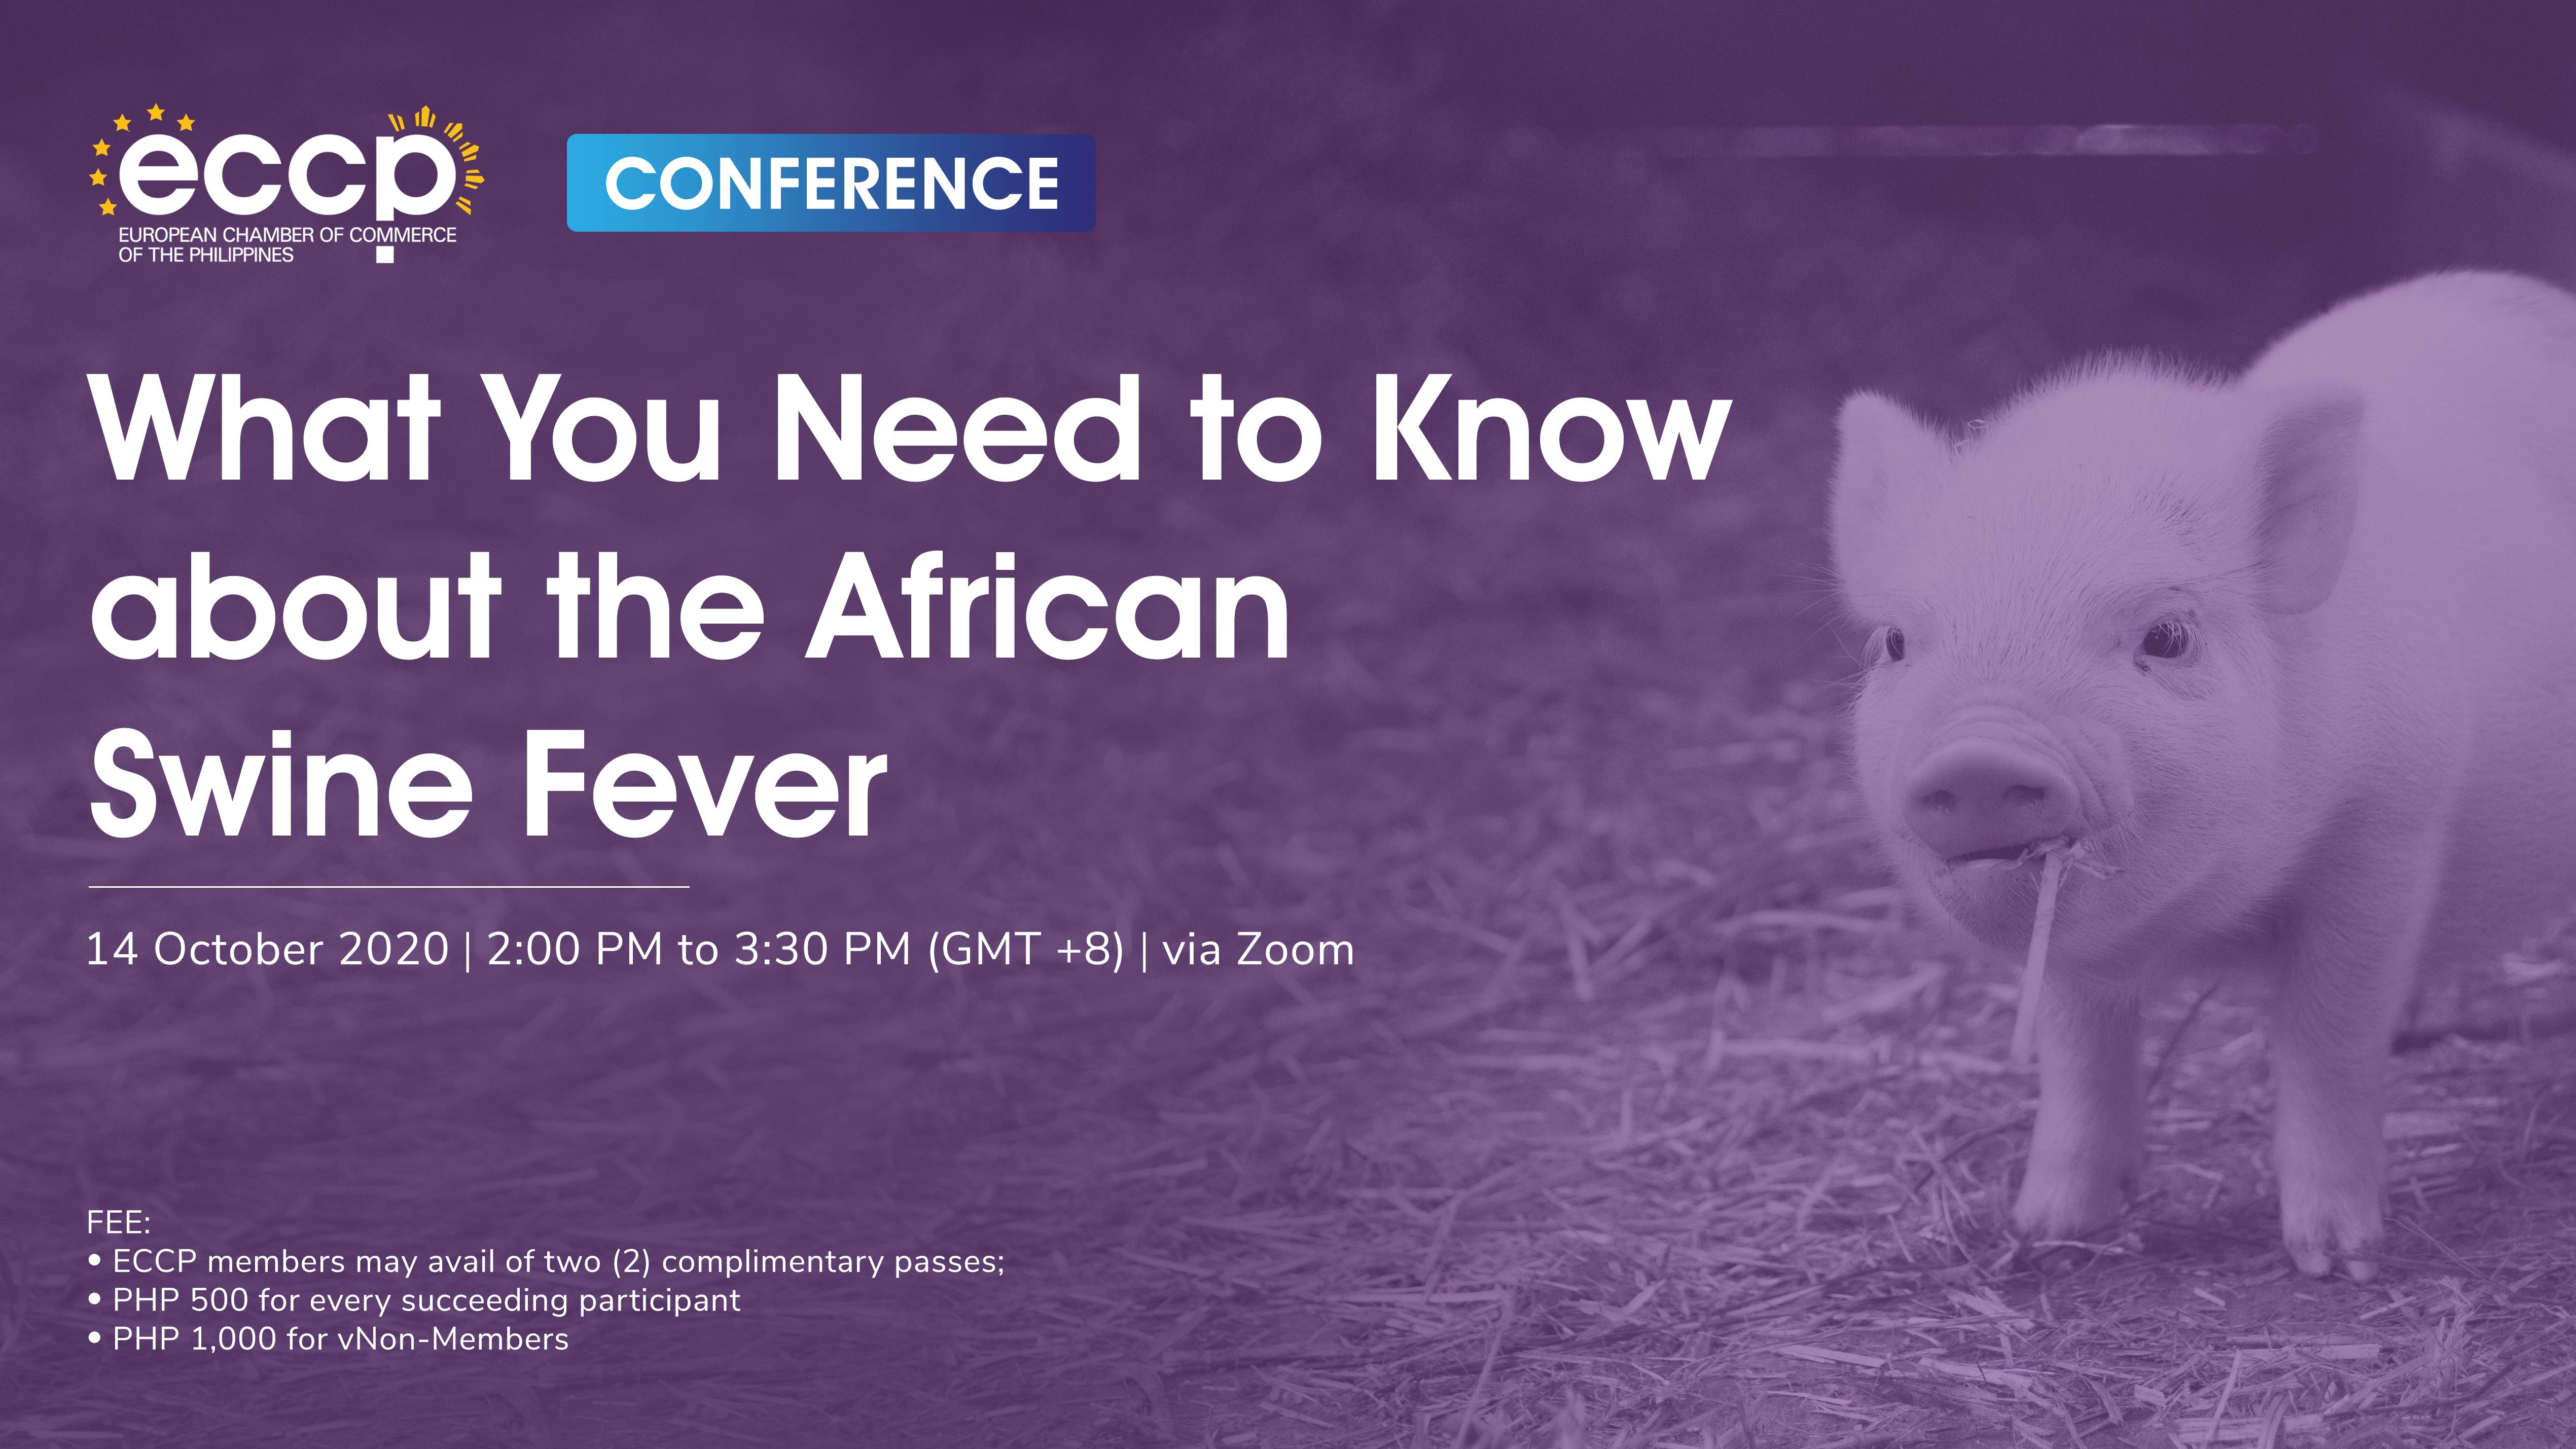 What You Need To Know about the African Swine Fever